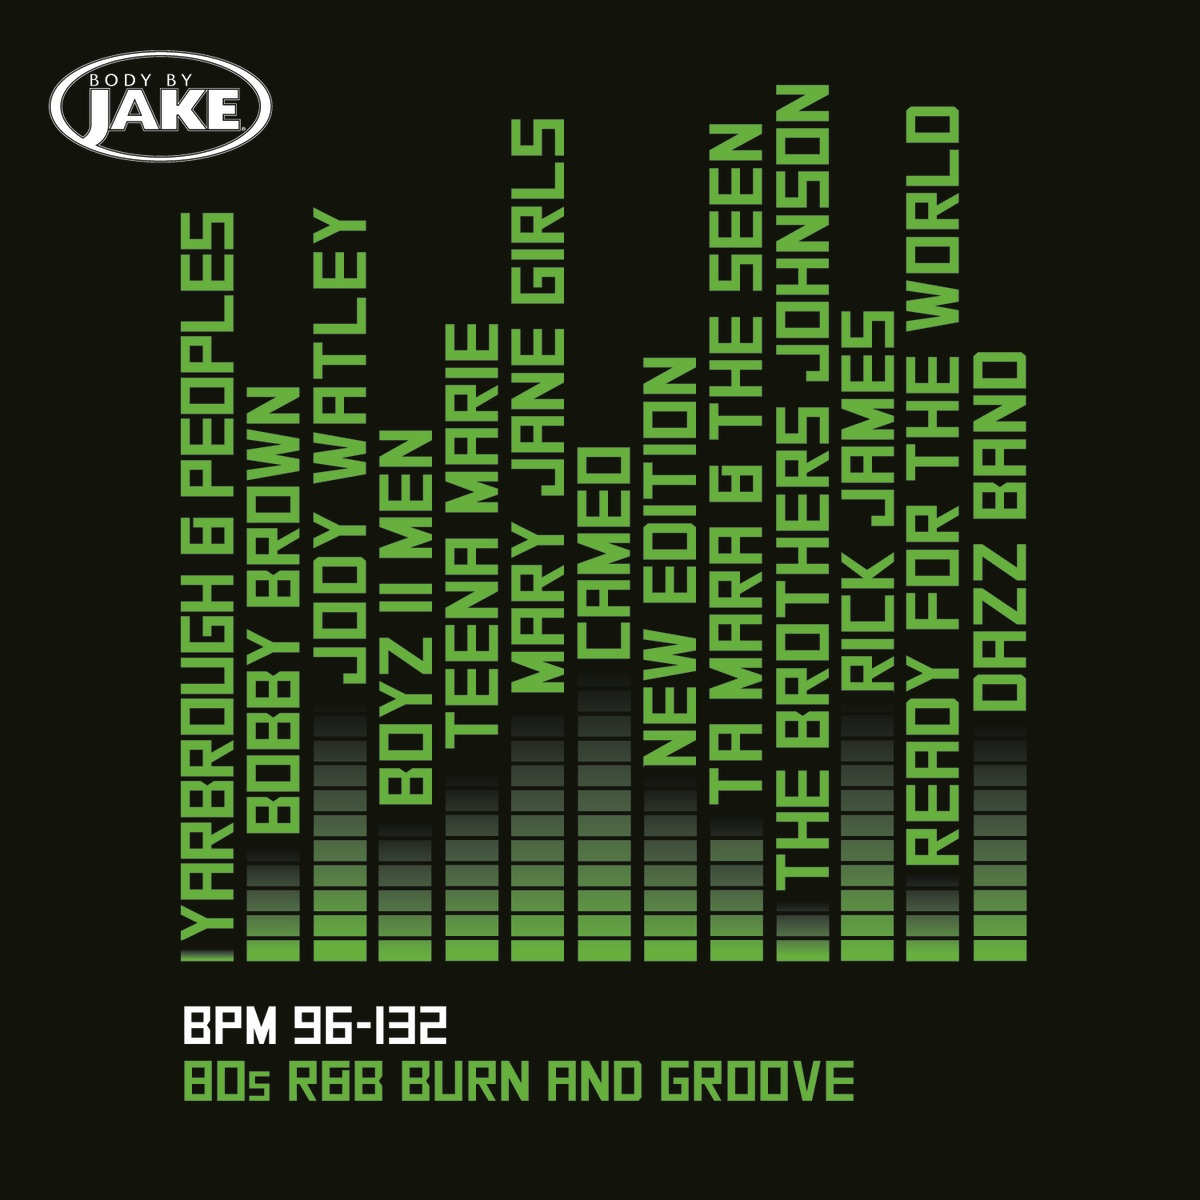 Body By Jake 80s RB Burn And Groove BPM 96-132 Various Artists CD cover